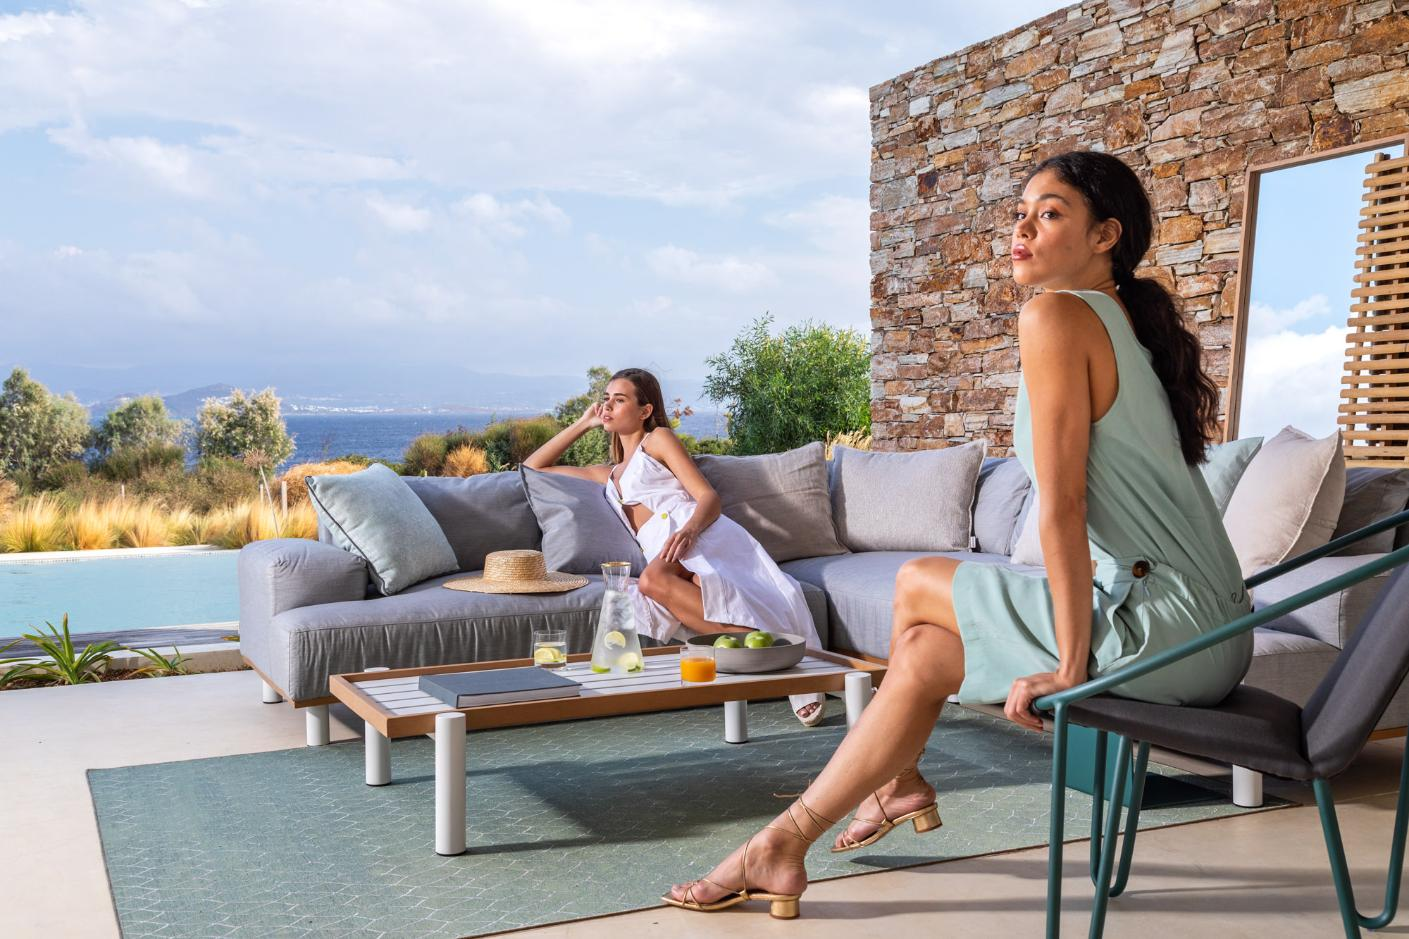 outdoor furniture trends: formal is out, comfort is in